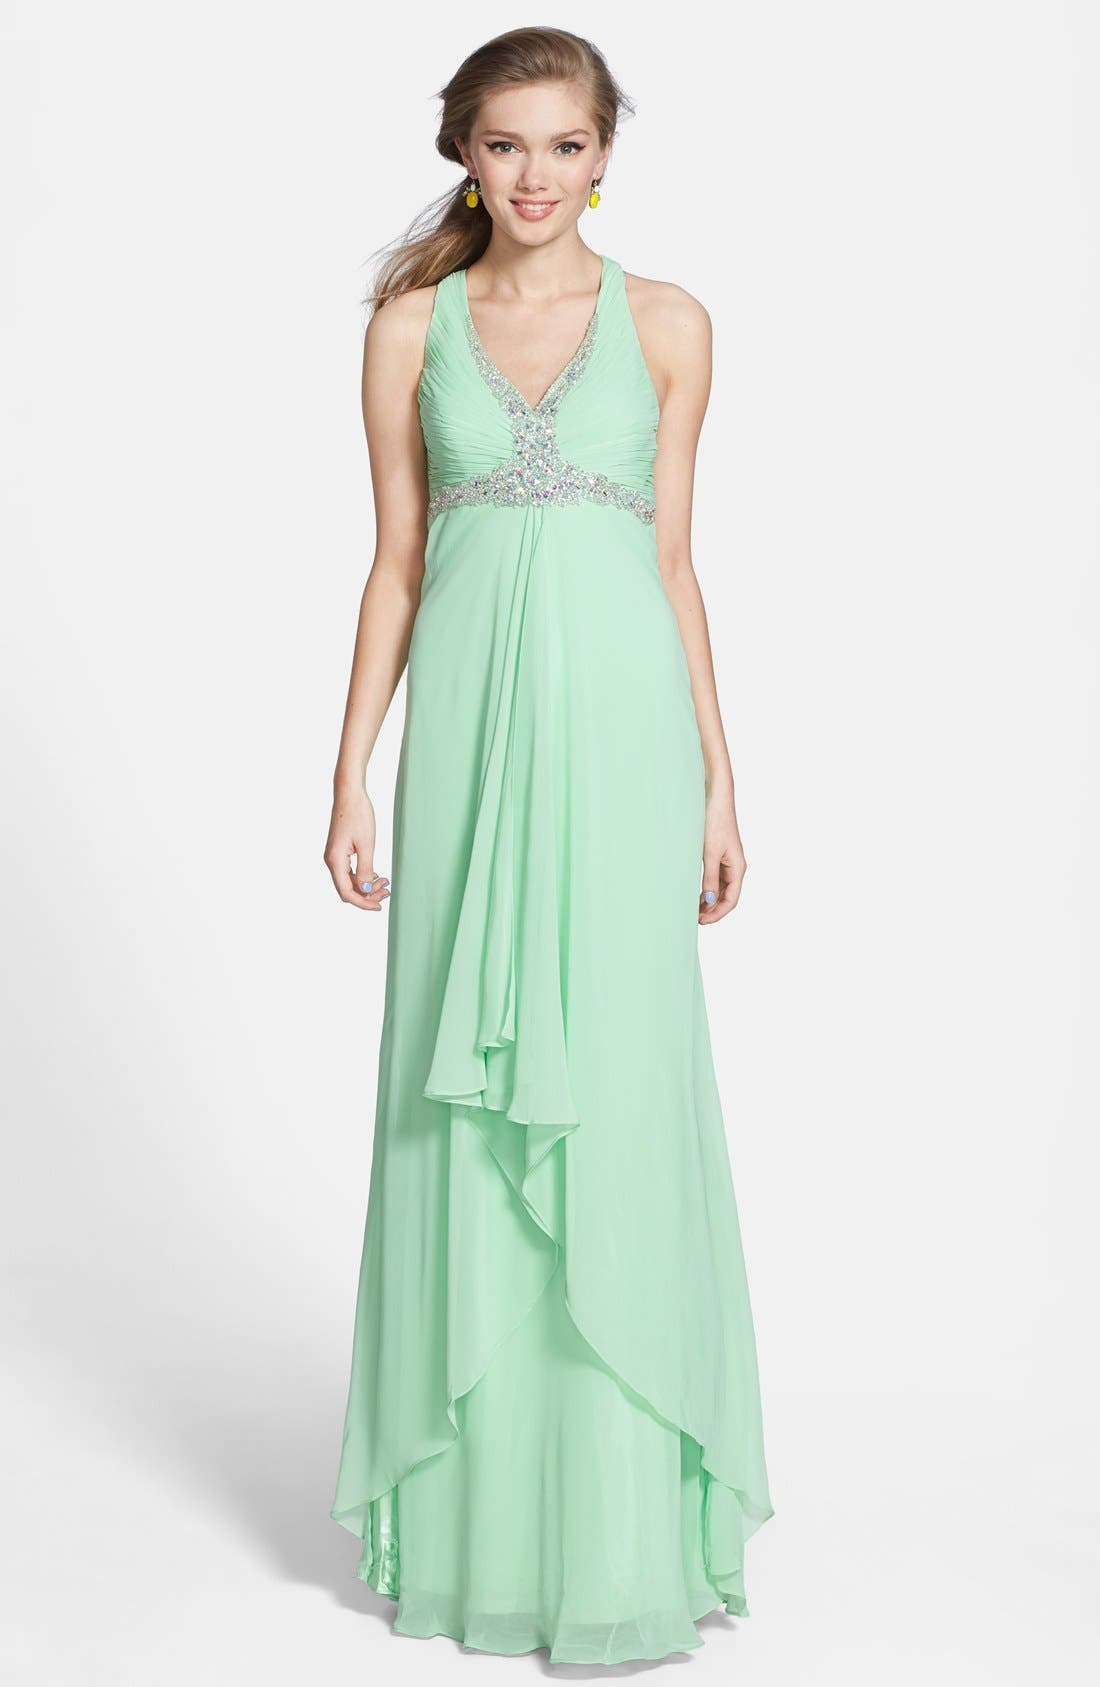 Main Image - Faviana Embellished Cross Back Chiffon Gown (Online Only)